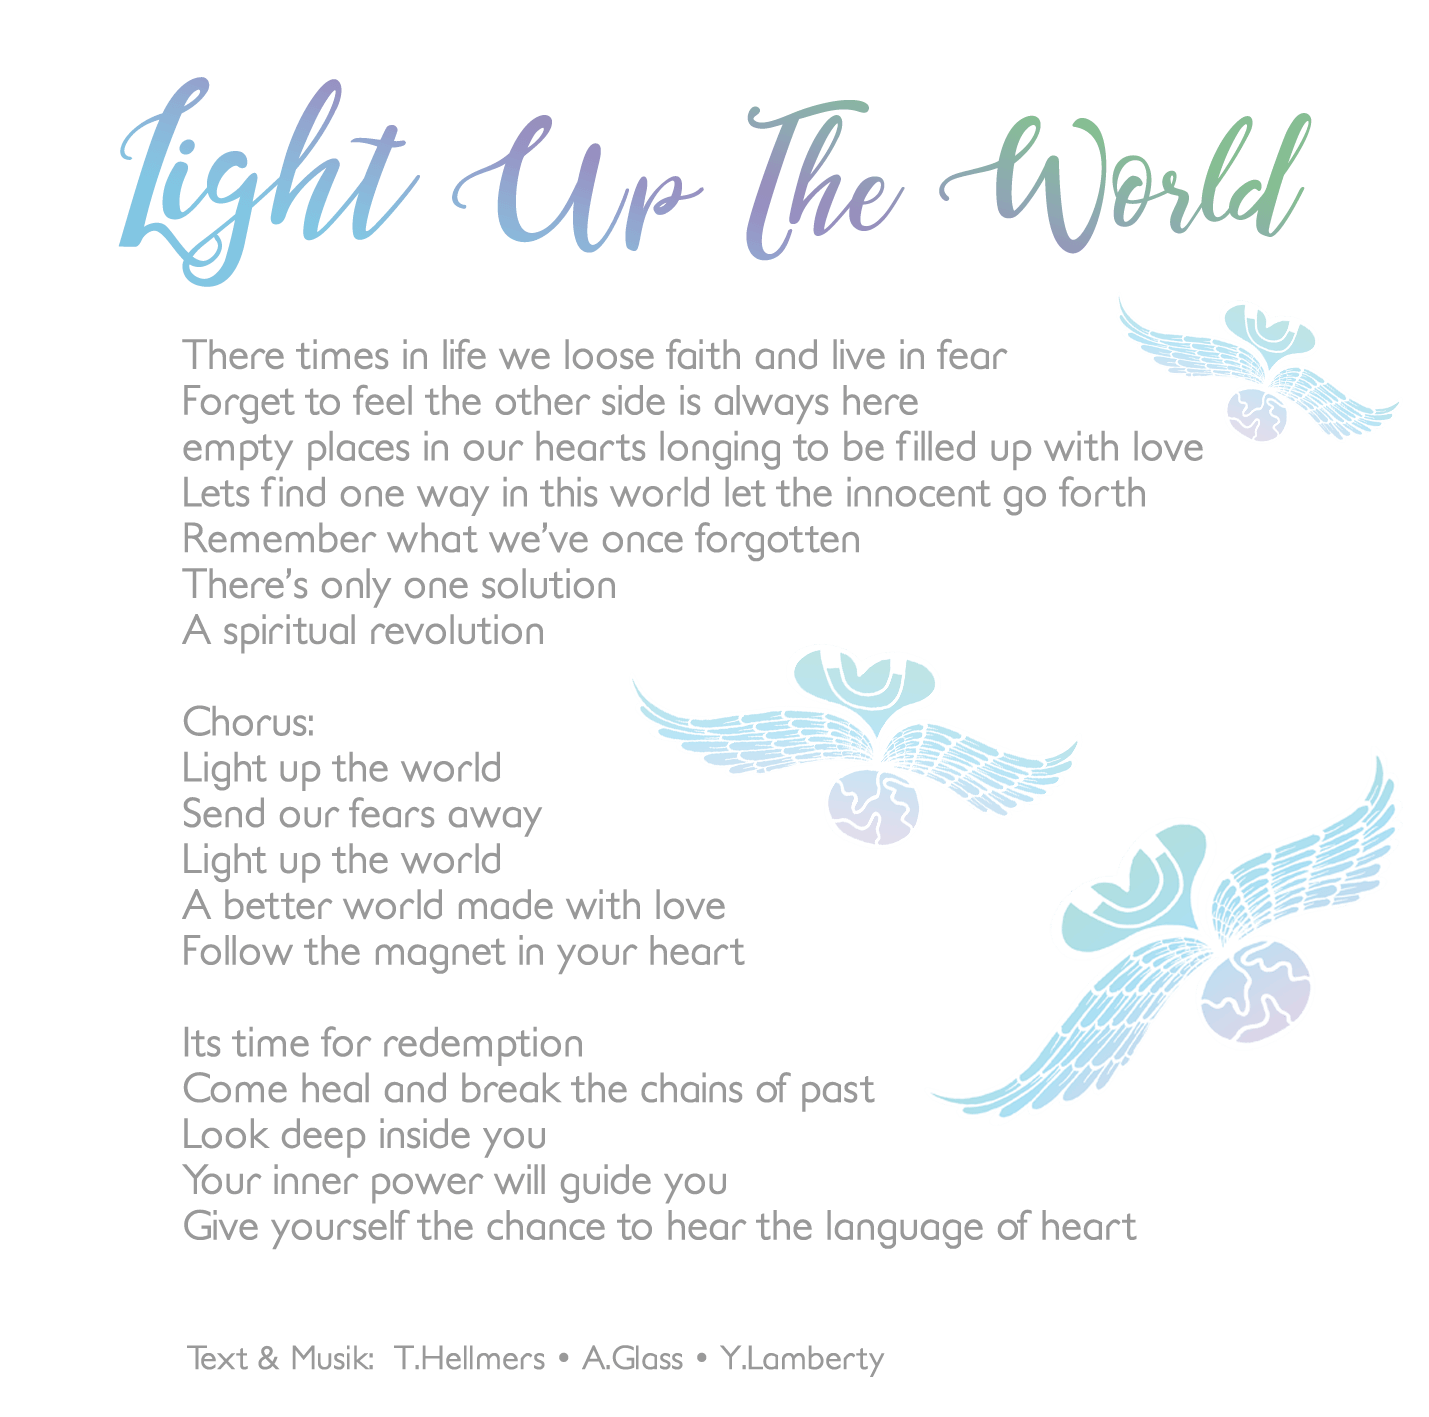 LightUpTheWorld- Musik text